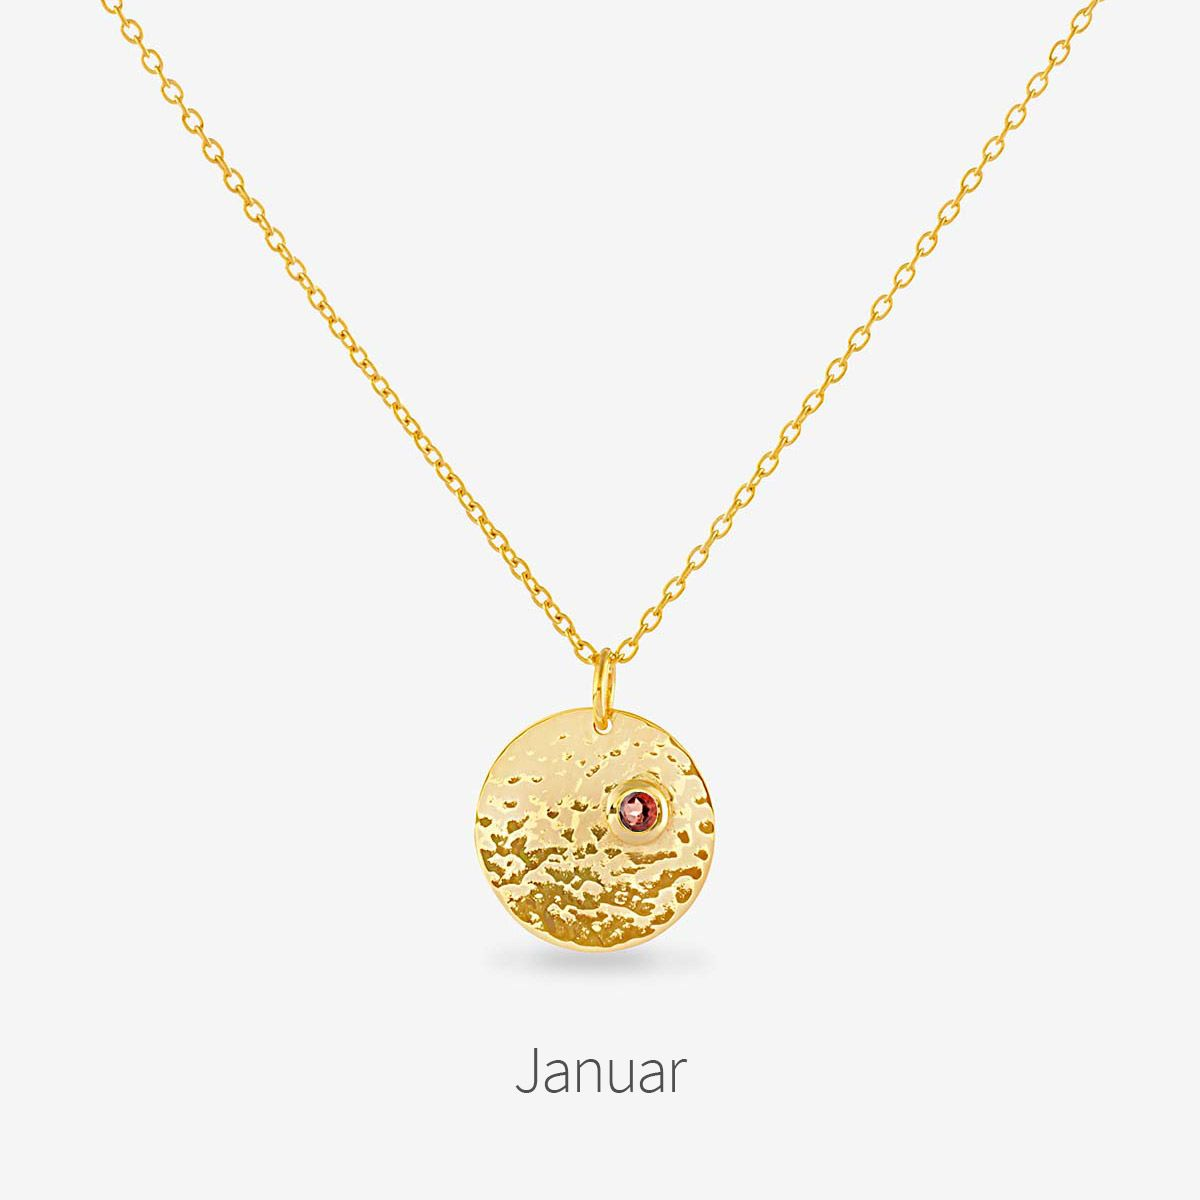 Birthstone January - Halsketten - 18k vergoldet